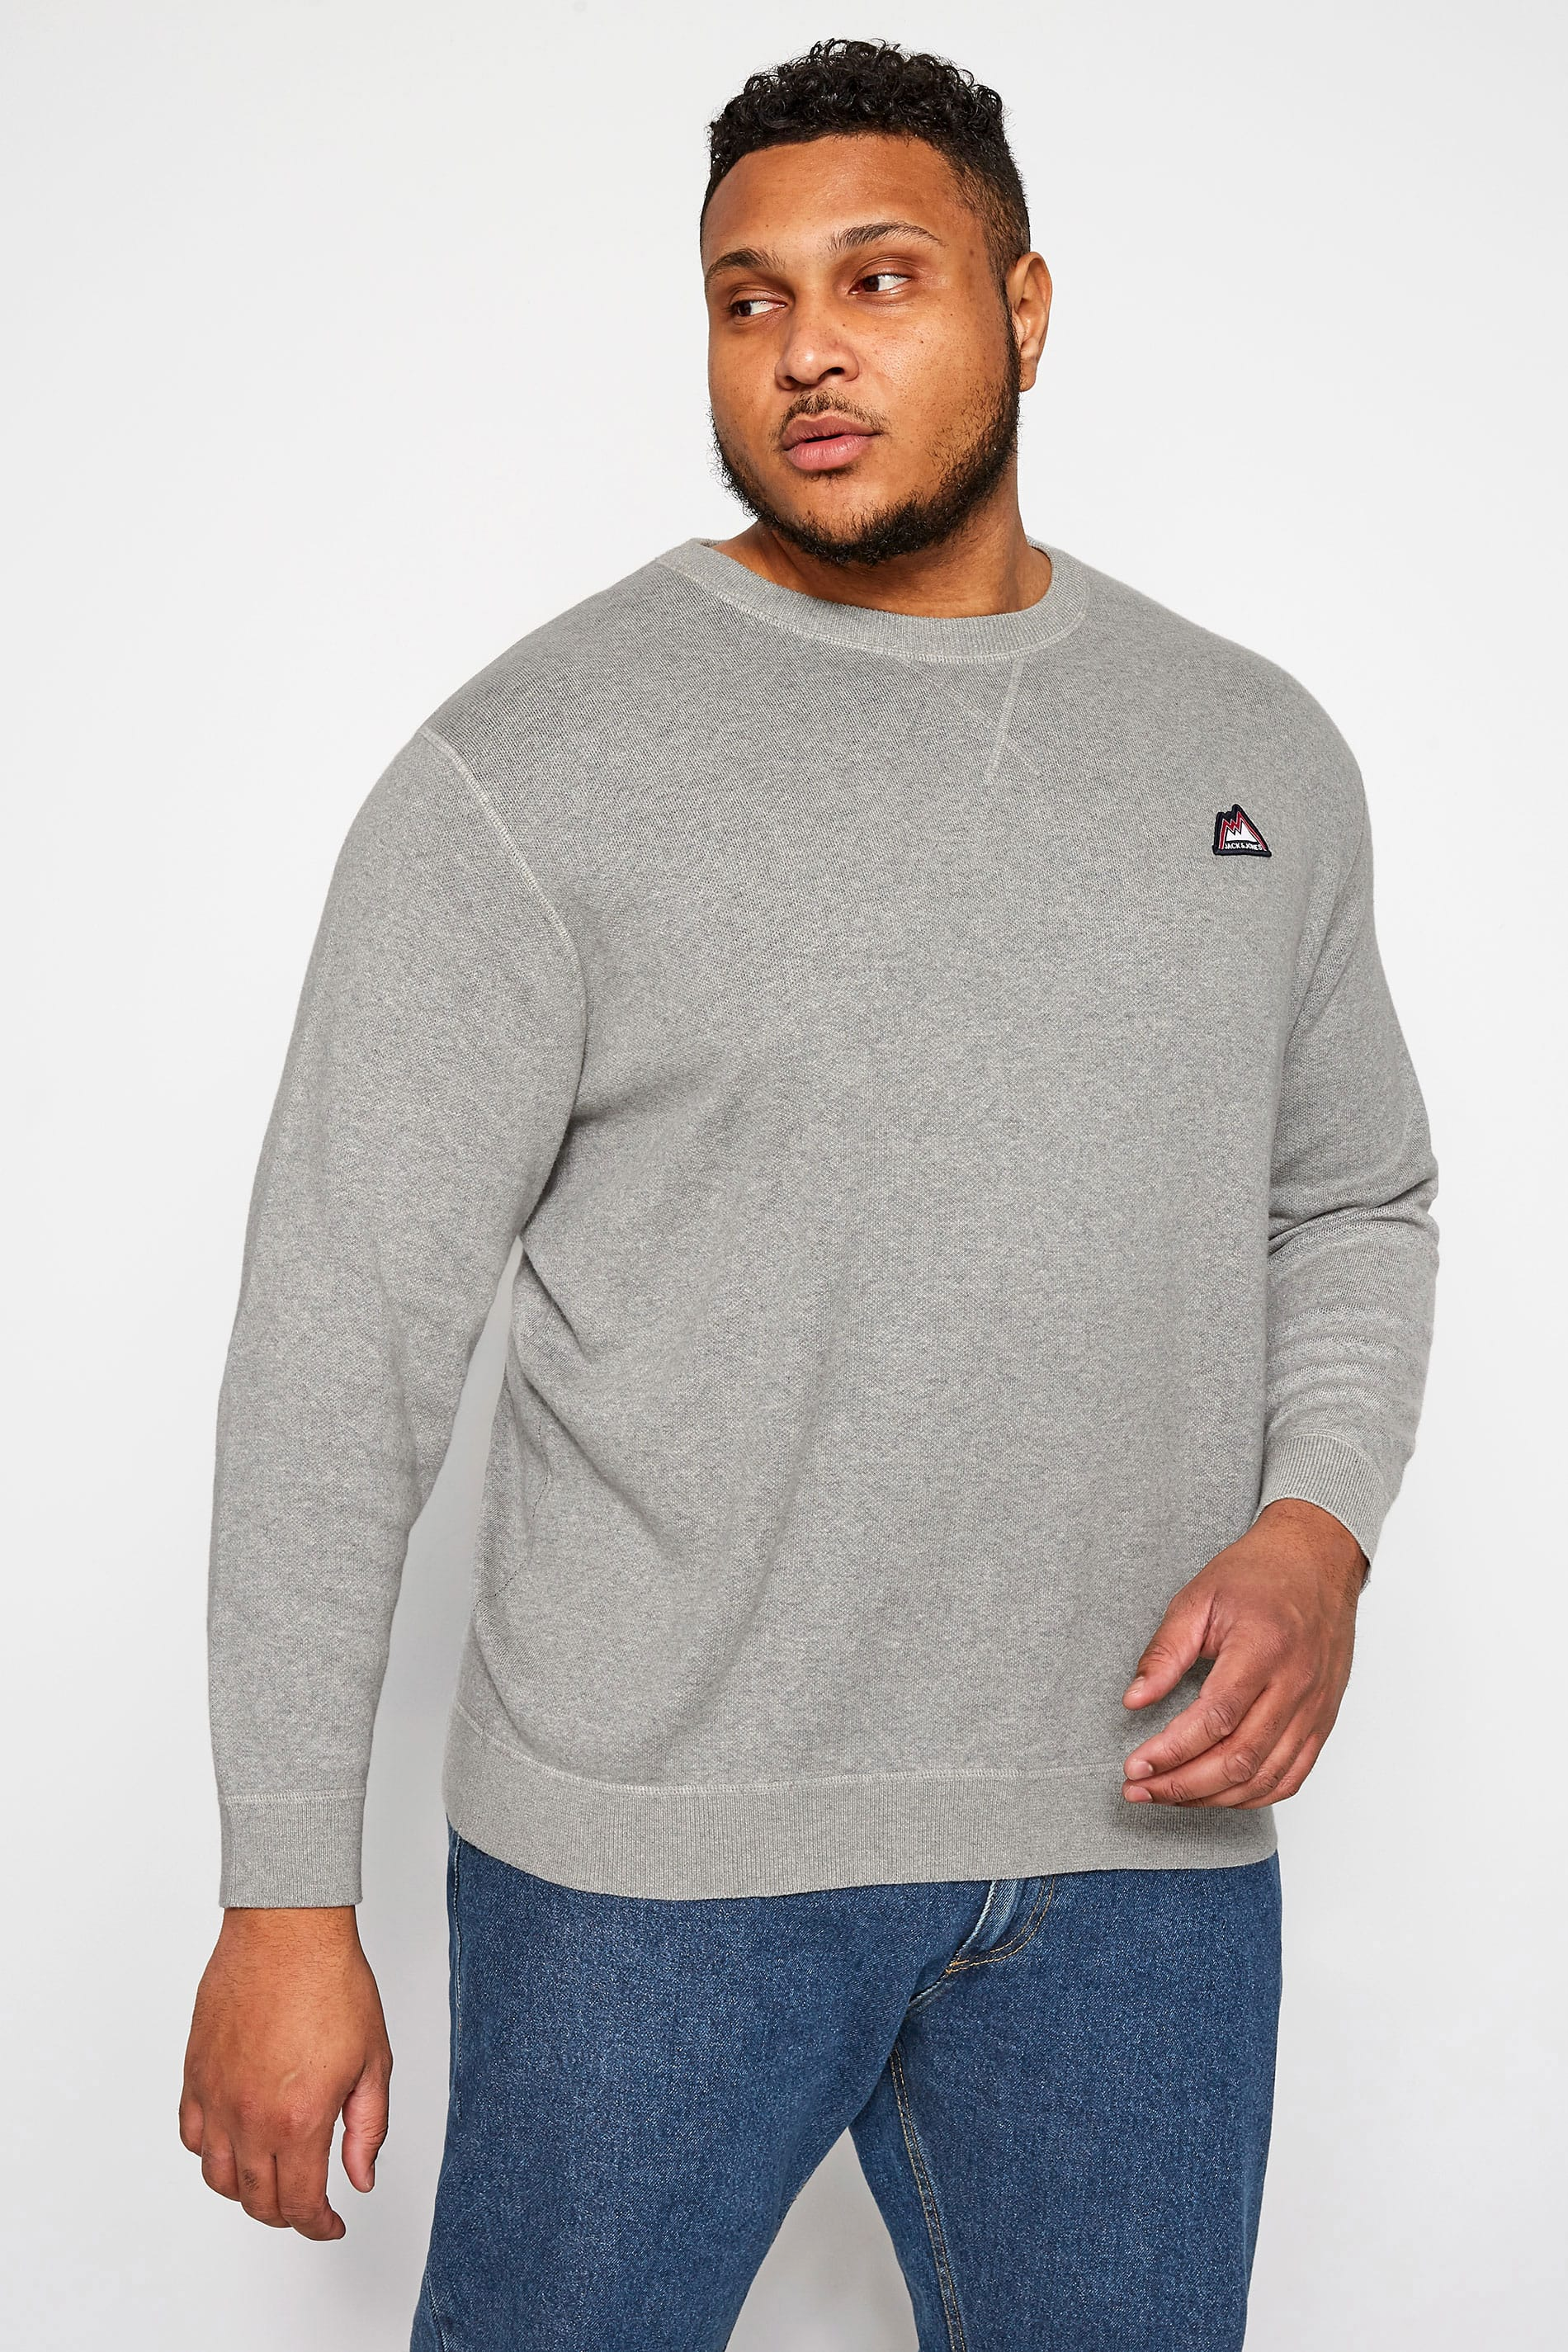 JACK & JONES Grey Crew Neck Sweatshirt